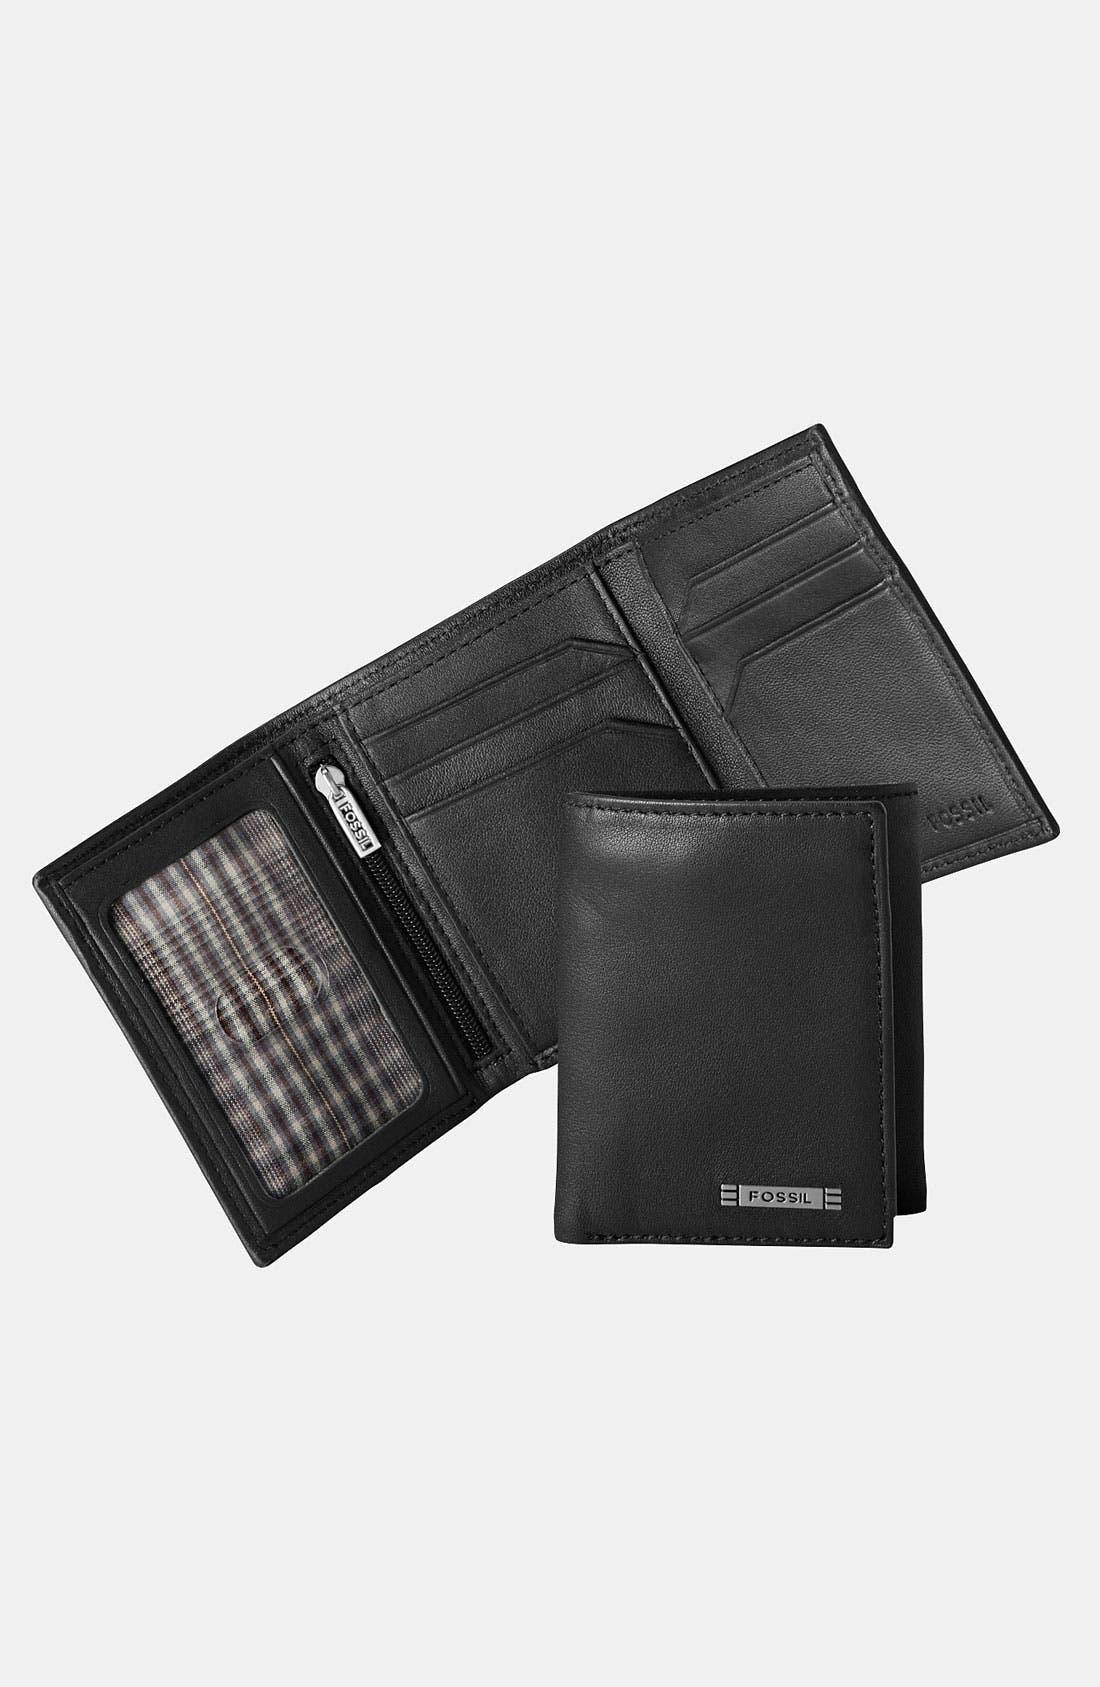 Alternate Image 1 Selected - Fossil 'Evans' Leather Trifold Wallet